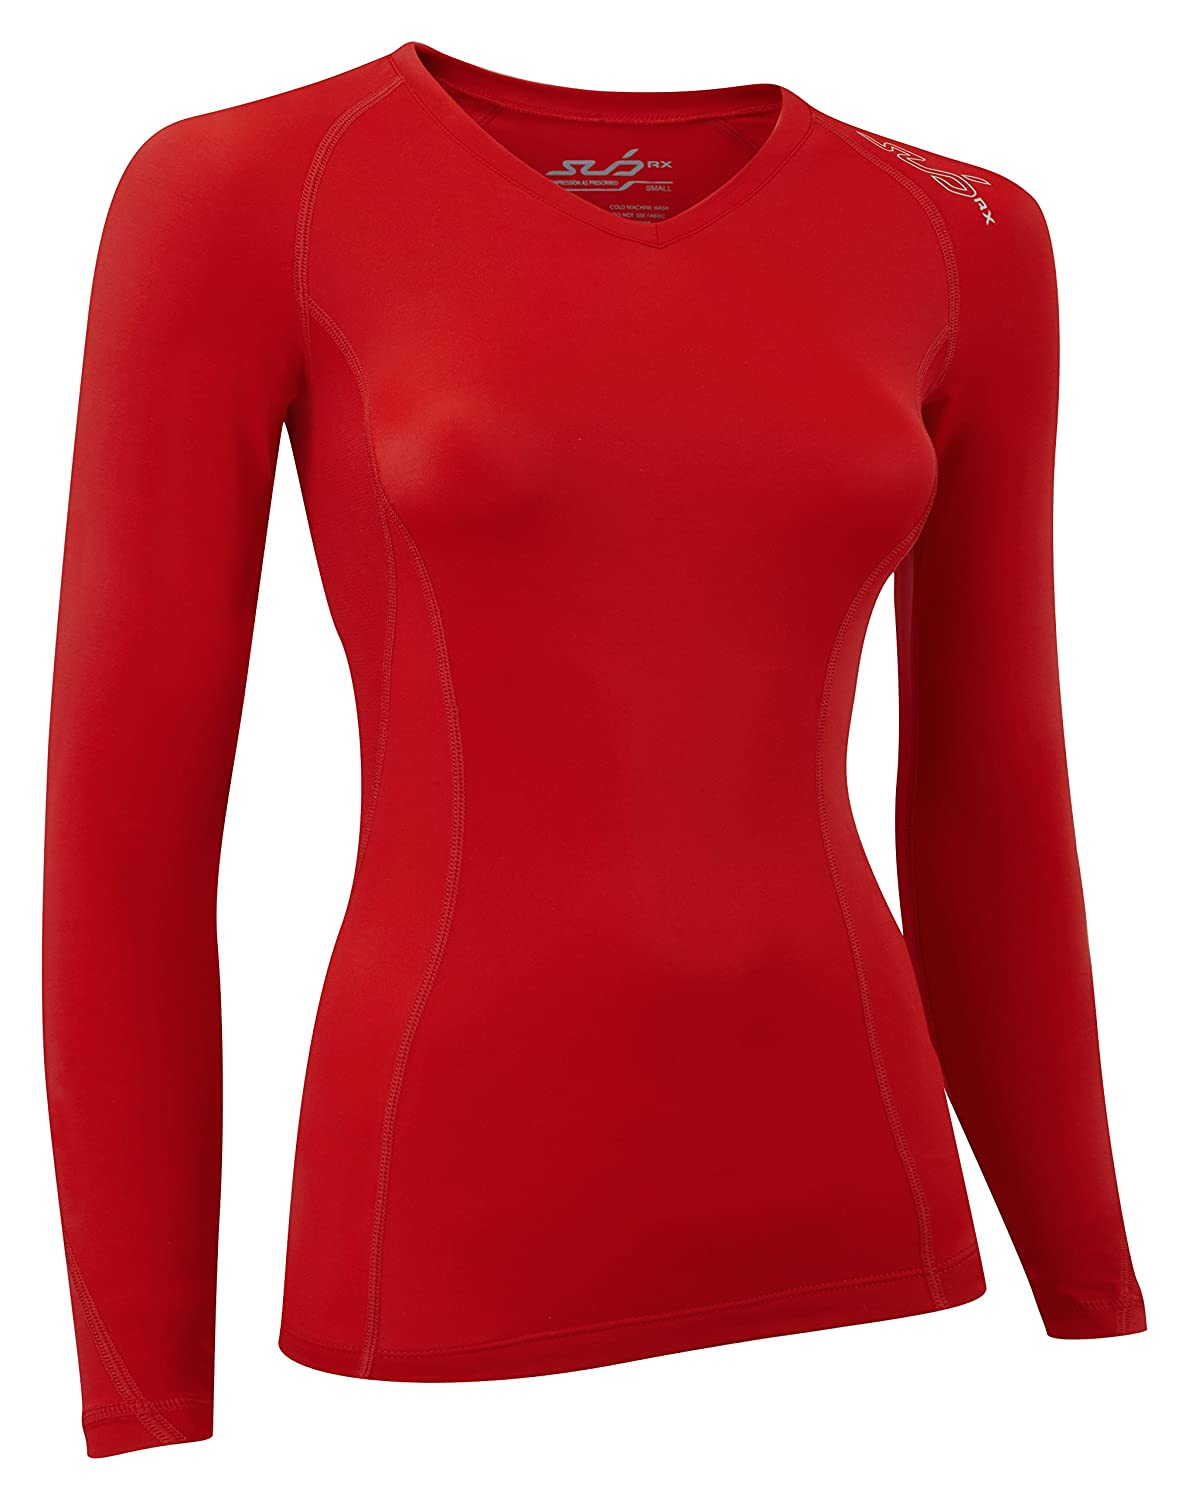 サブElite RXレディースGraduated Compression Top – Long Sleeve Base Layer B00NAYMU6K X-Large|Red Stealth Red Stealth X-Large